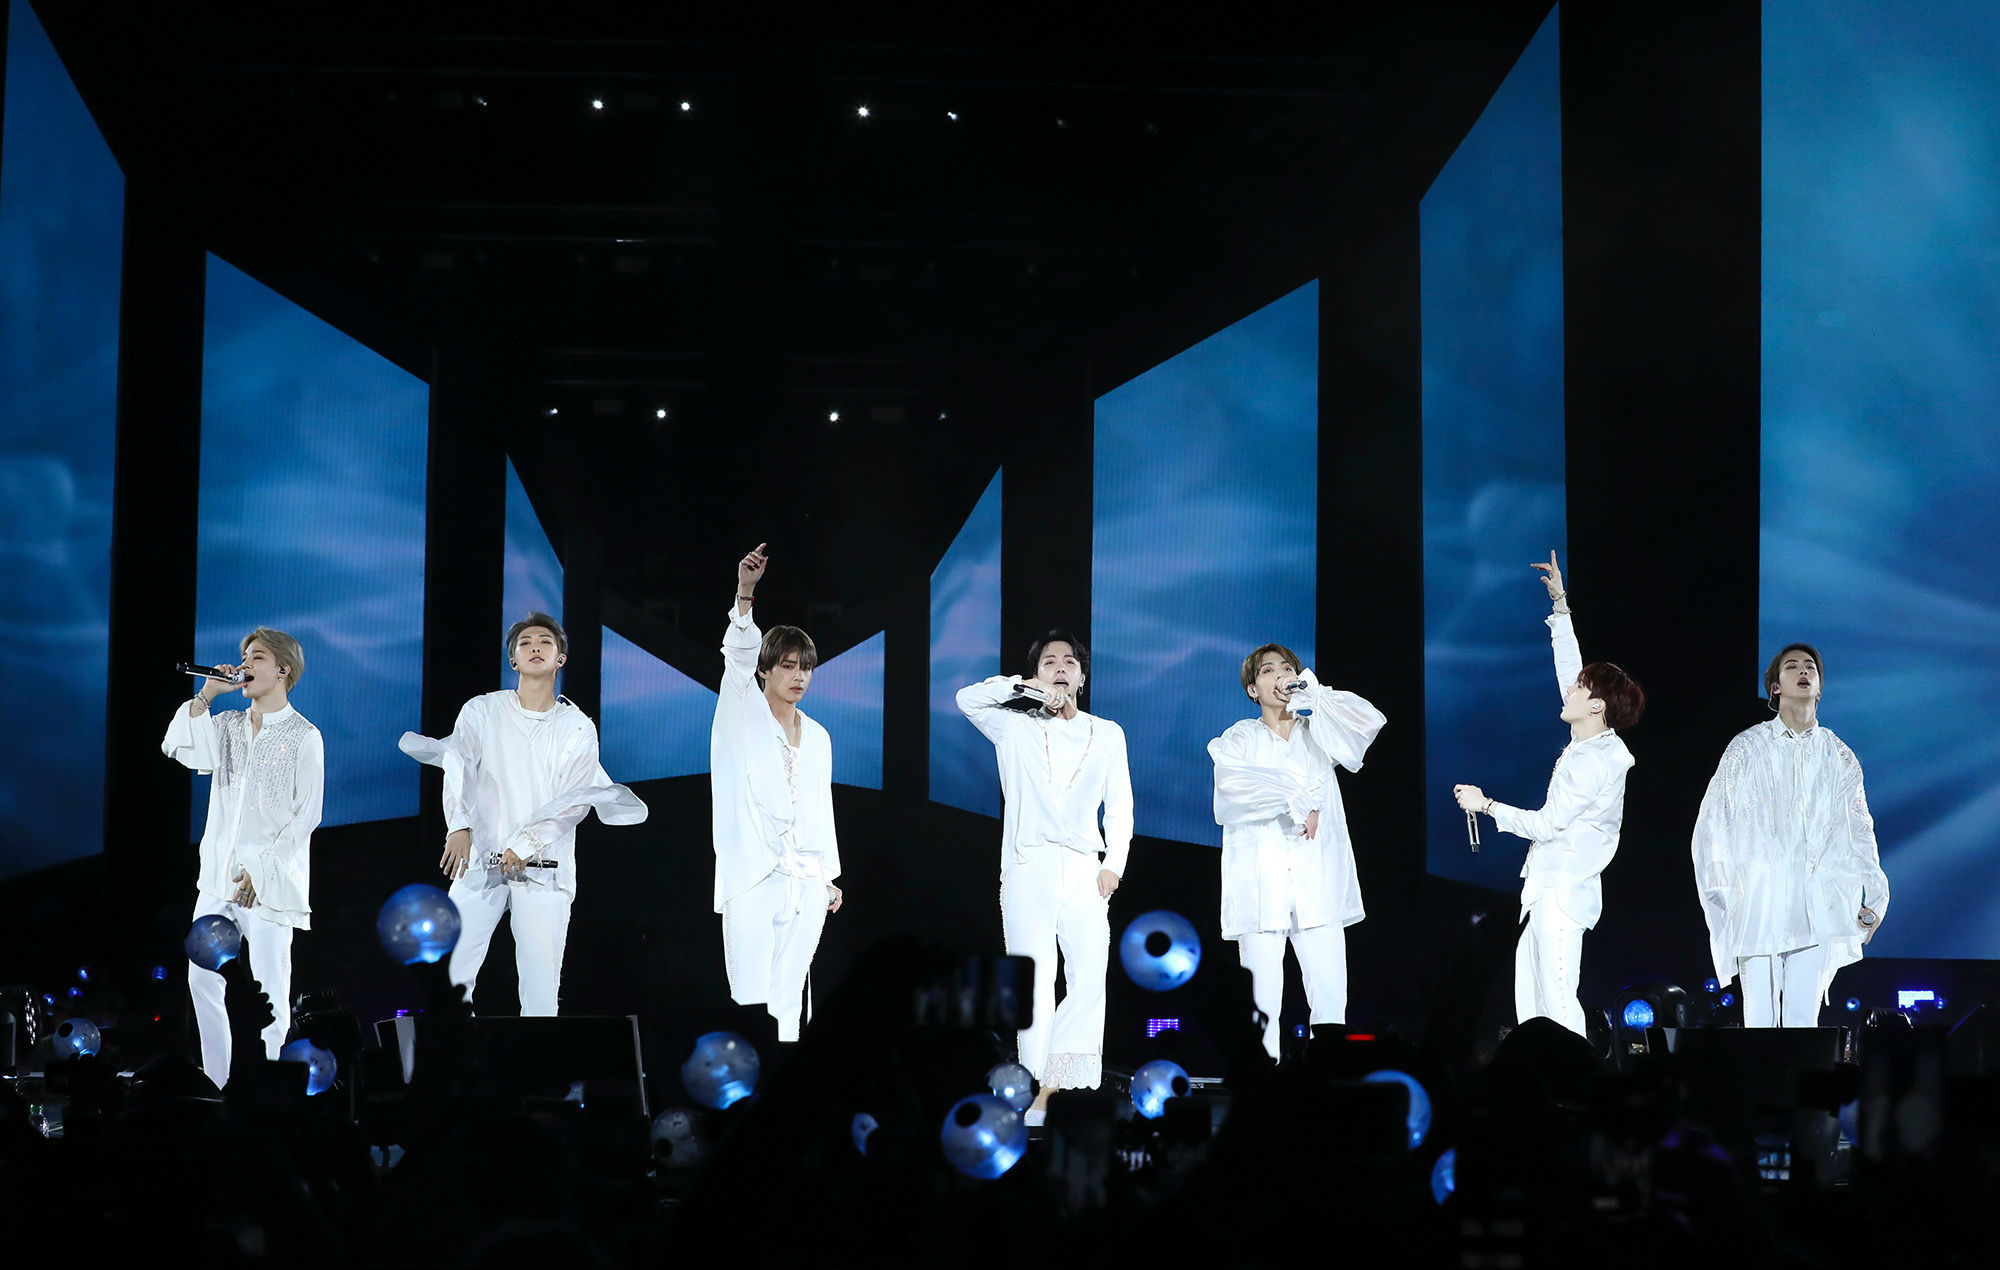 Bts Make History In New York With A Dazzling And Inclusive Stadium